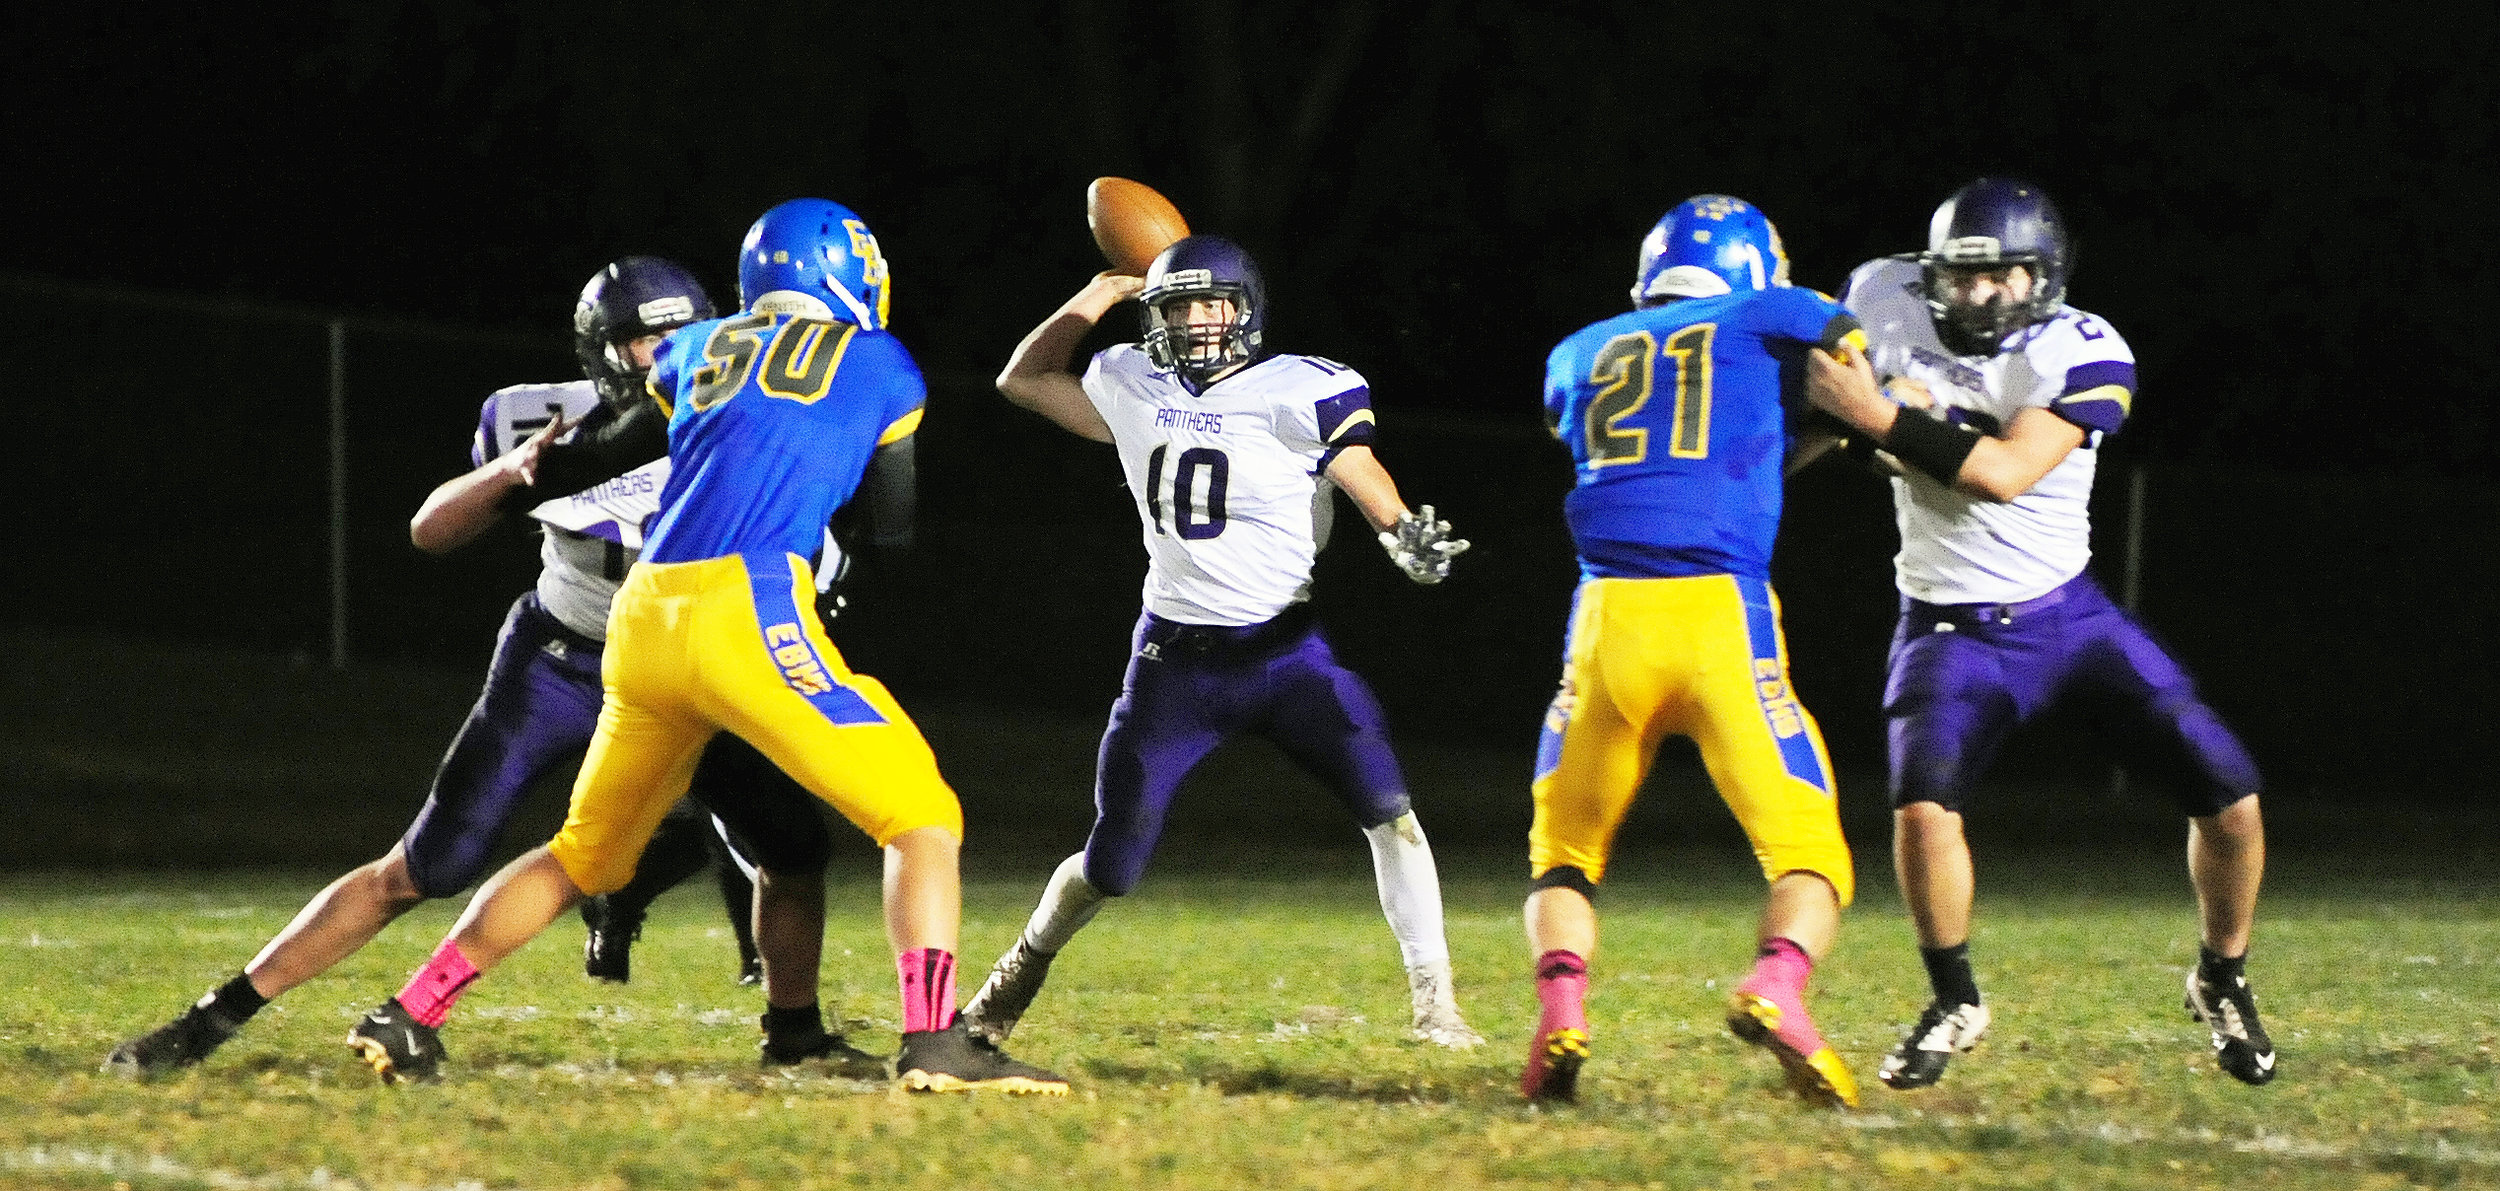 NICK INGRAM/Citizen photo North Platte senior Ben French looks to throw a pass between a pair of blockers against East Buchanan.